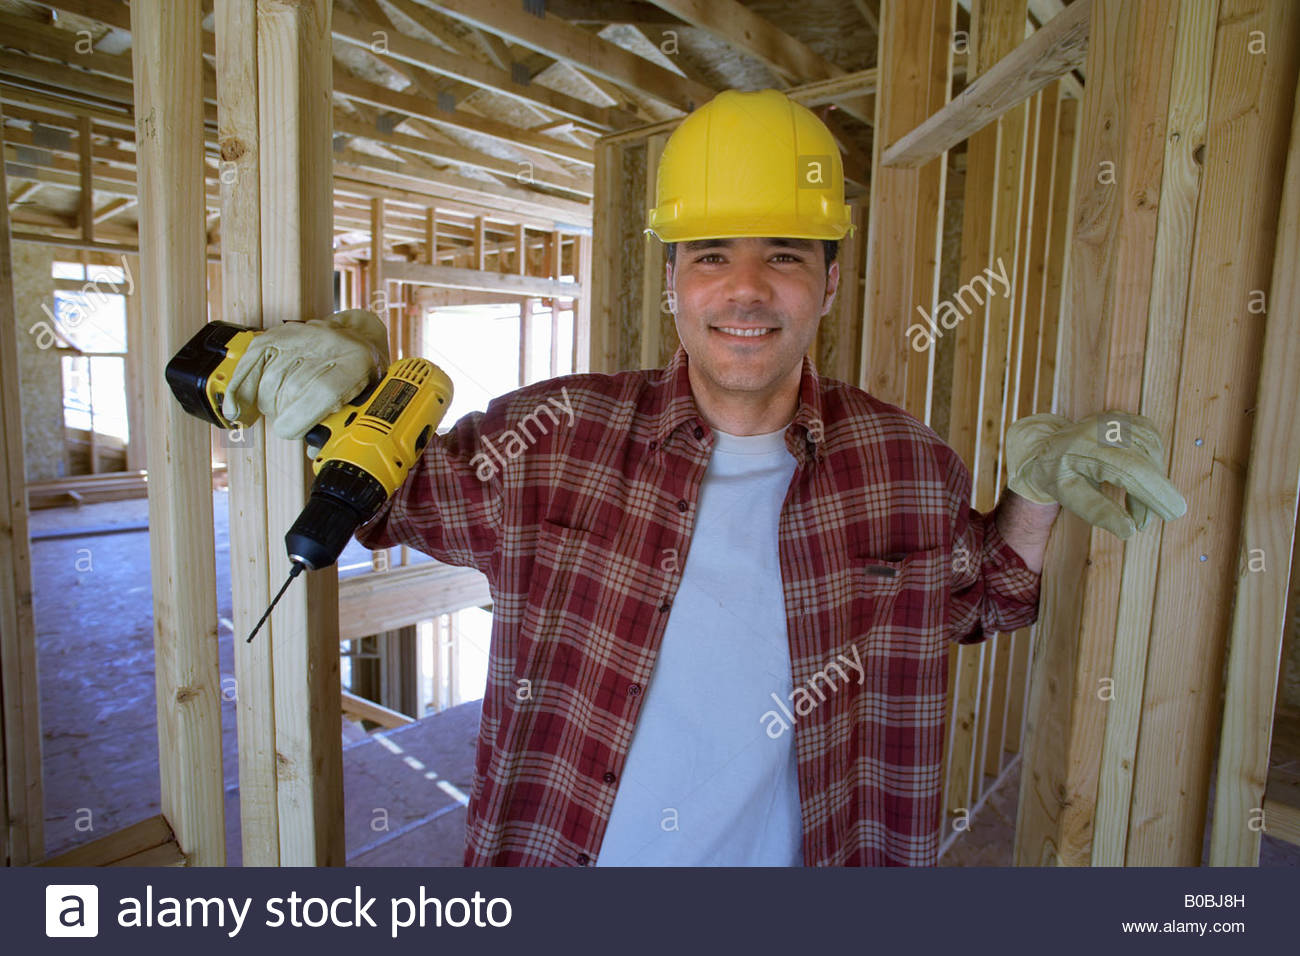 Builder in hardhat in partially built house, smiling, portrait - Stock Image